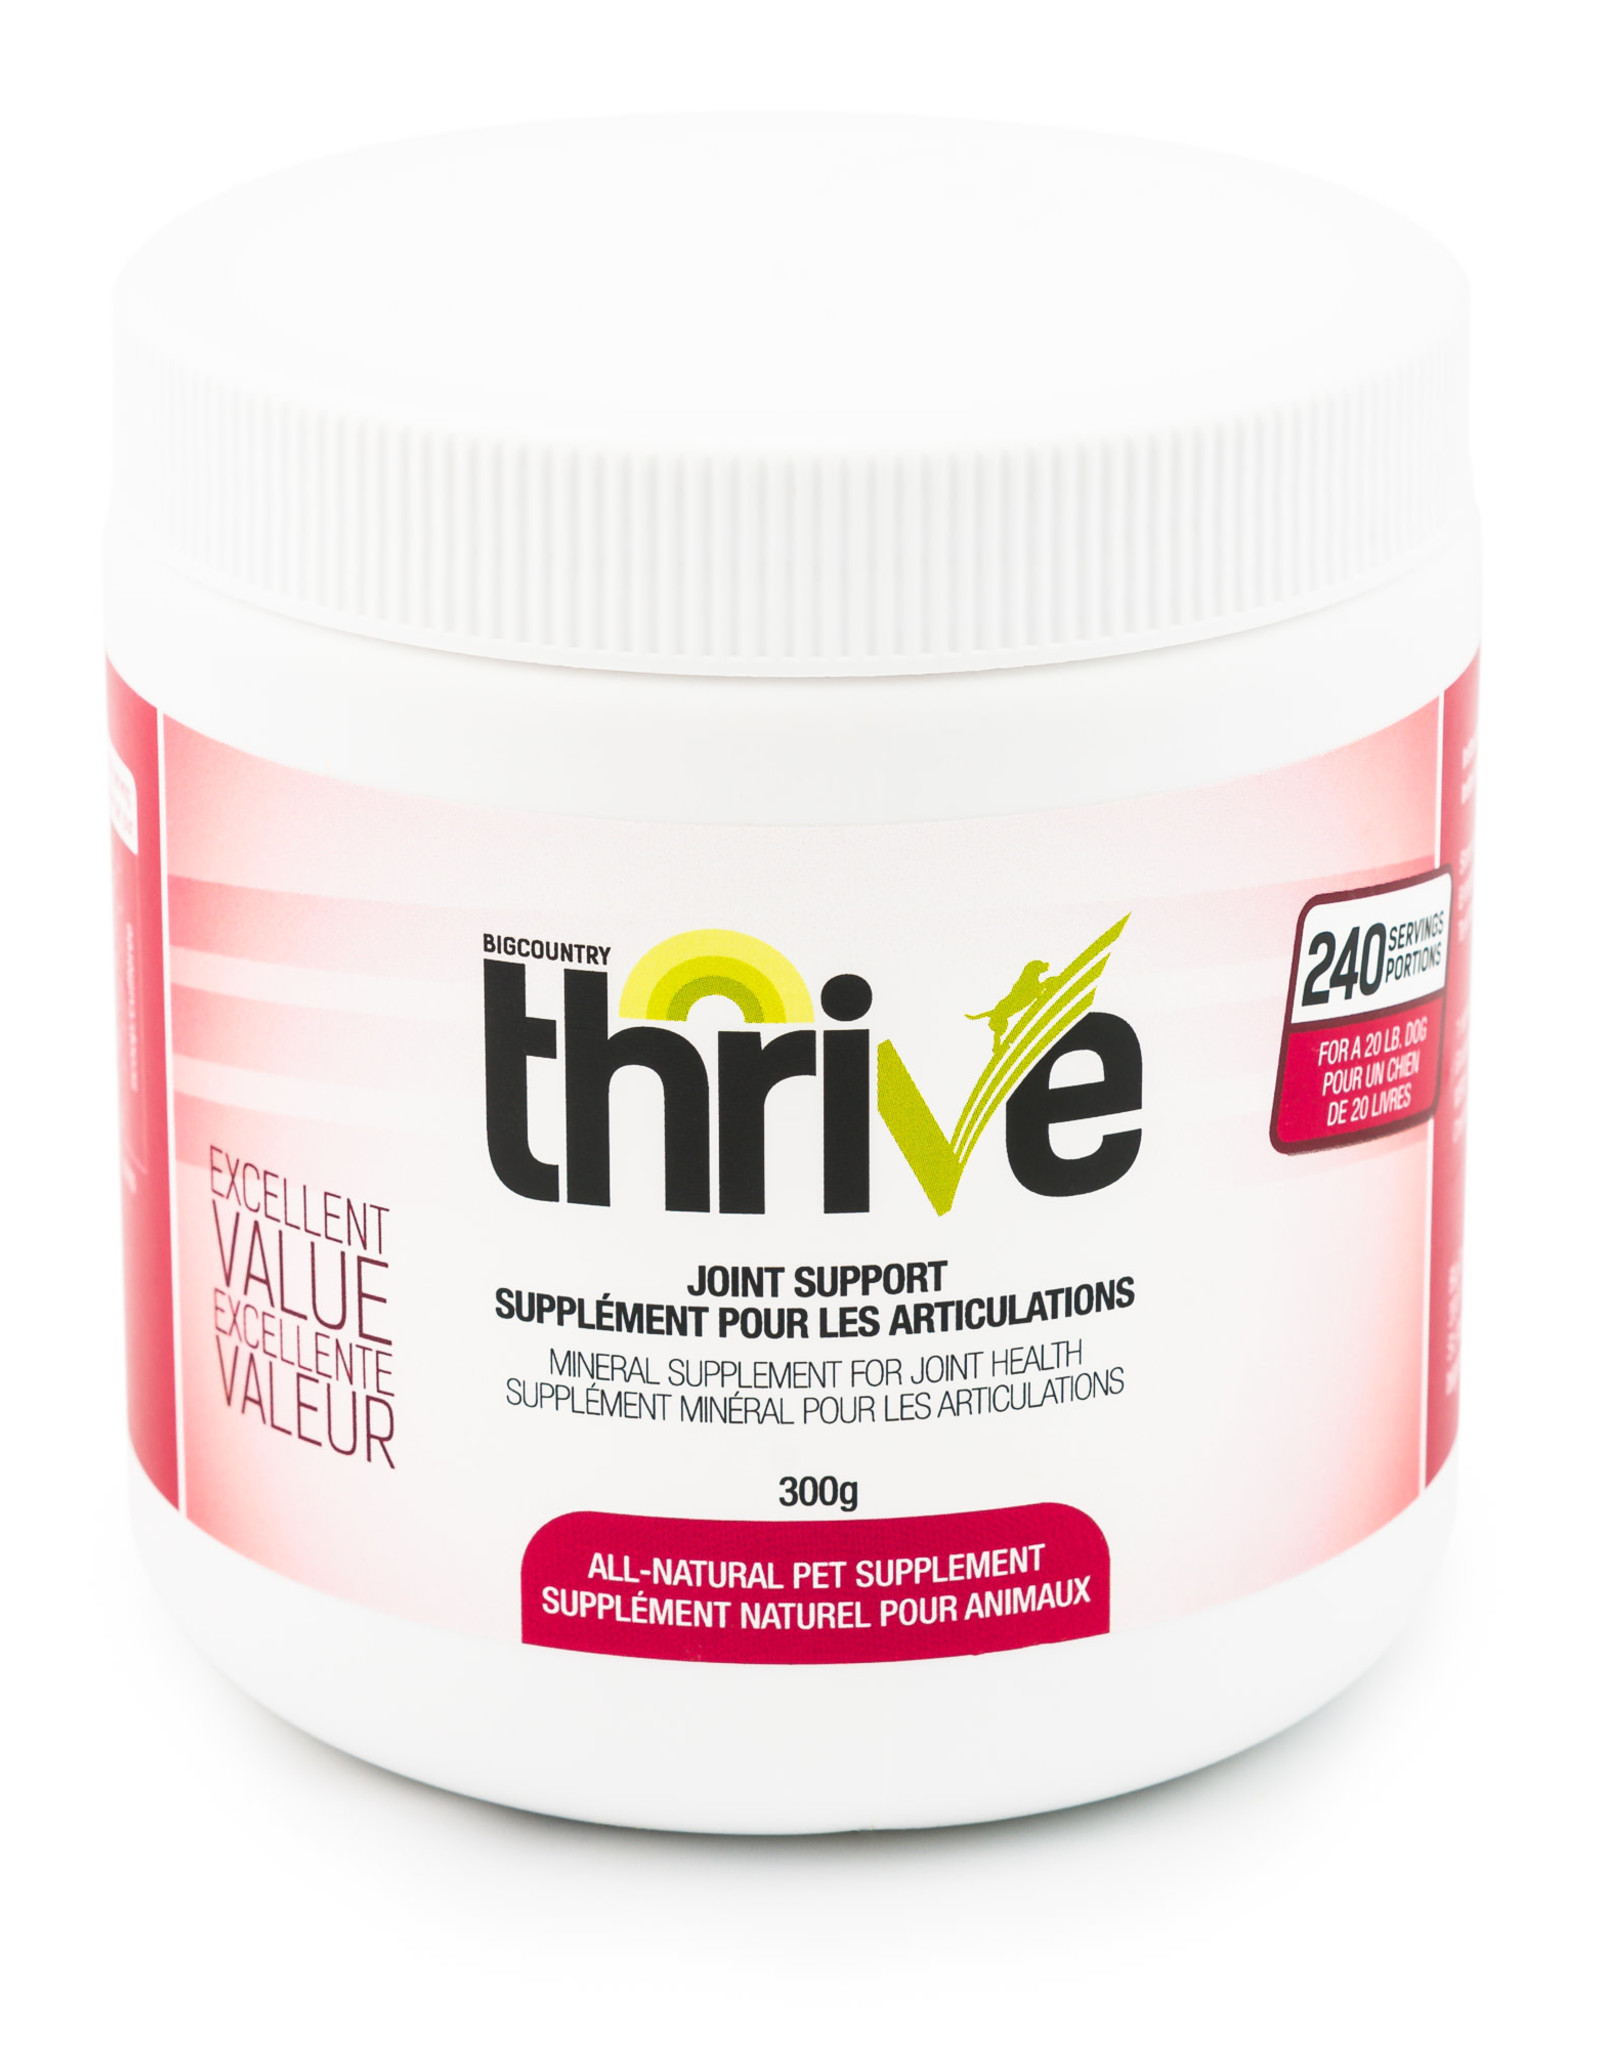 Big Country Raw Thrive Joint Support 300g